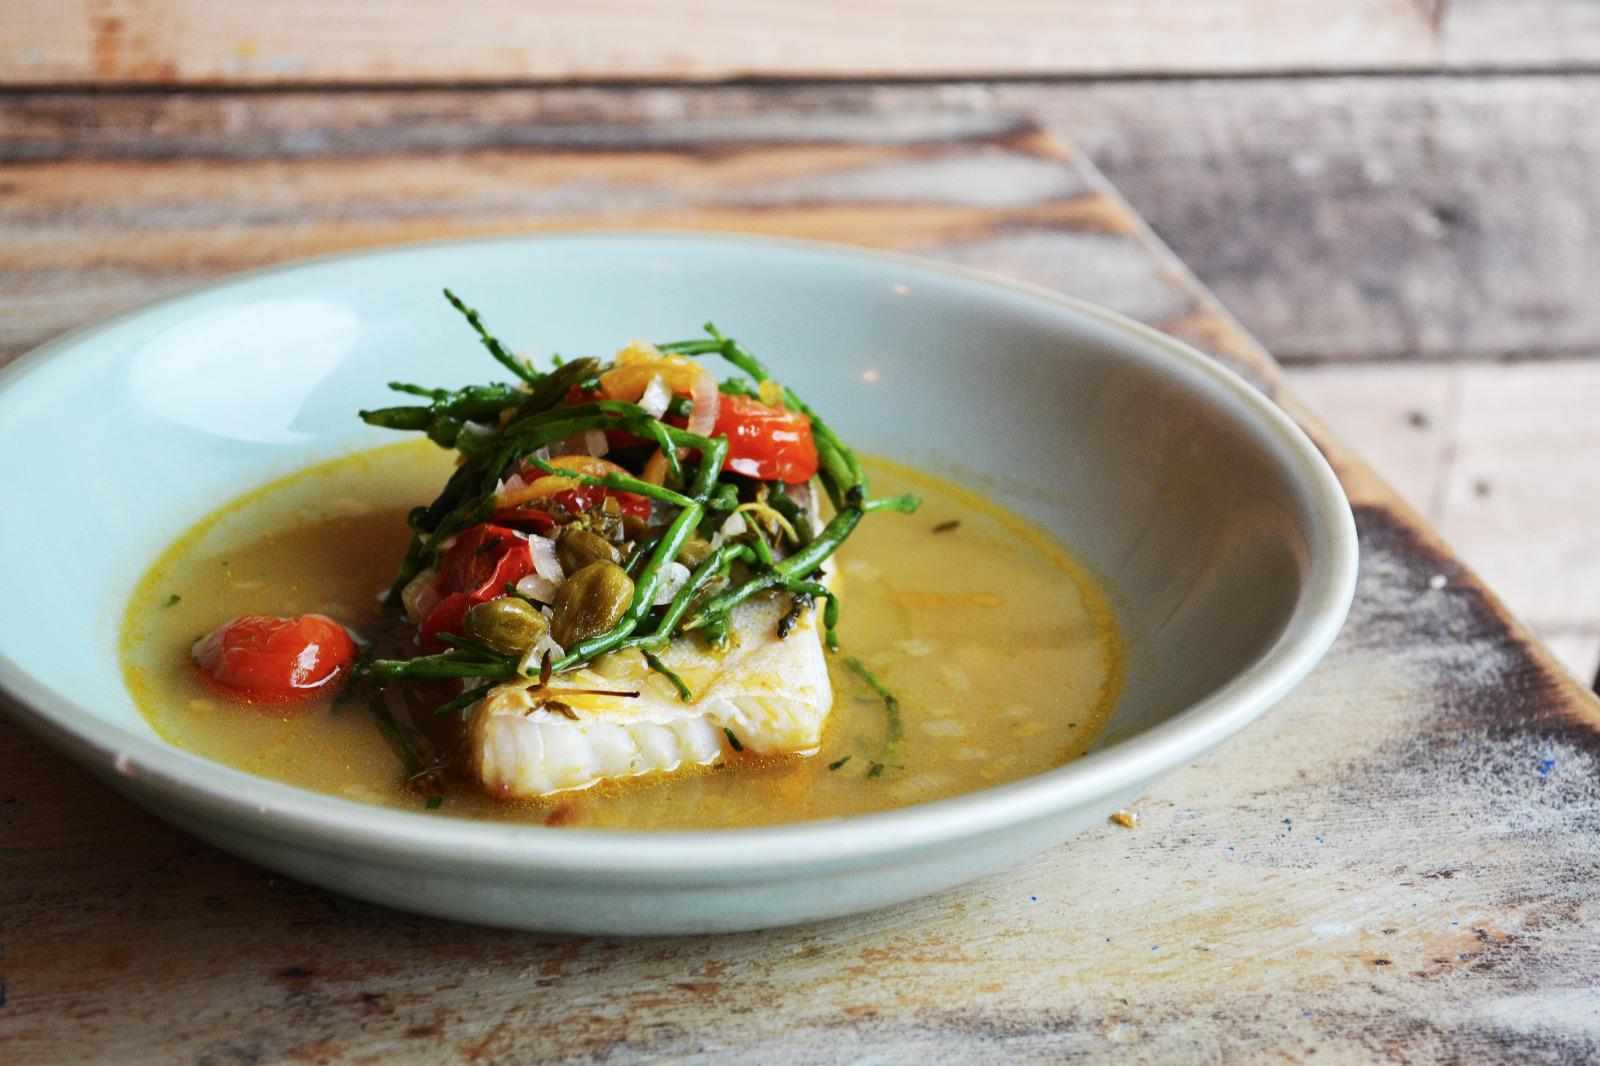 On a wooden table sits a bowl. In the bowl is a piece of hake in a yellow broth. It is topped with samphire and tomatoes